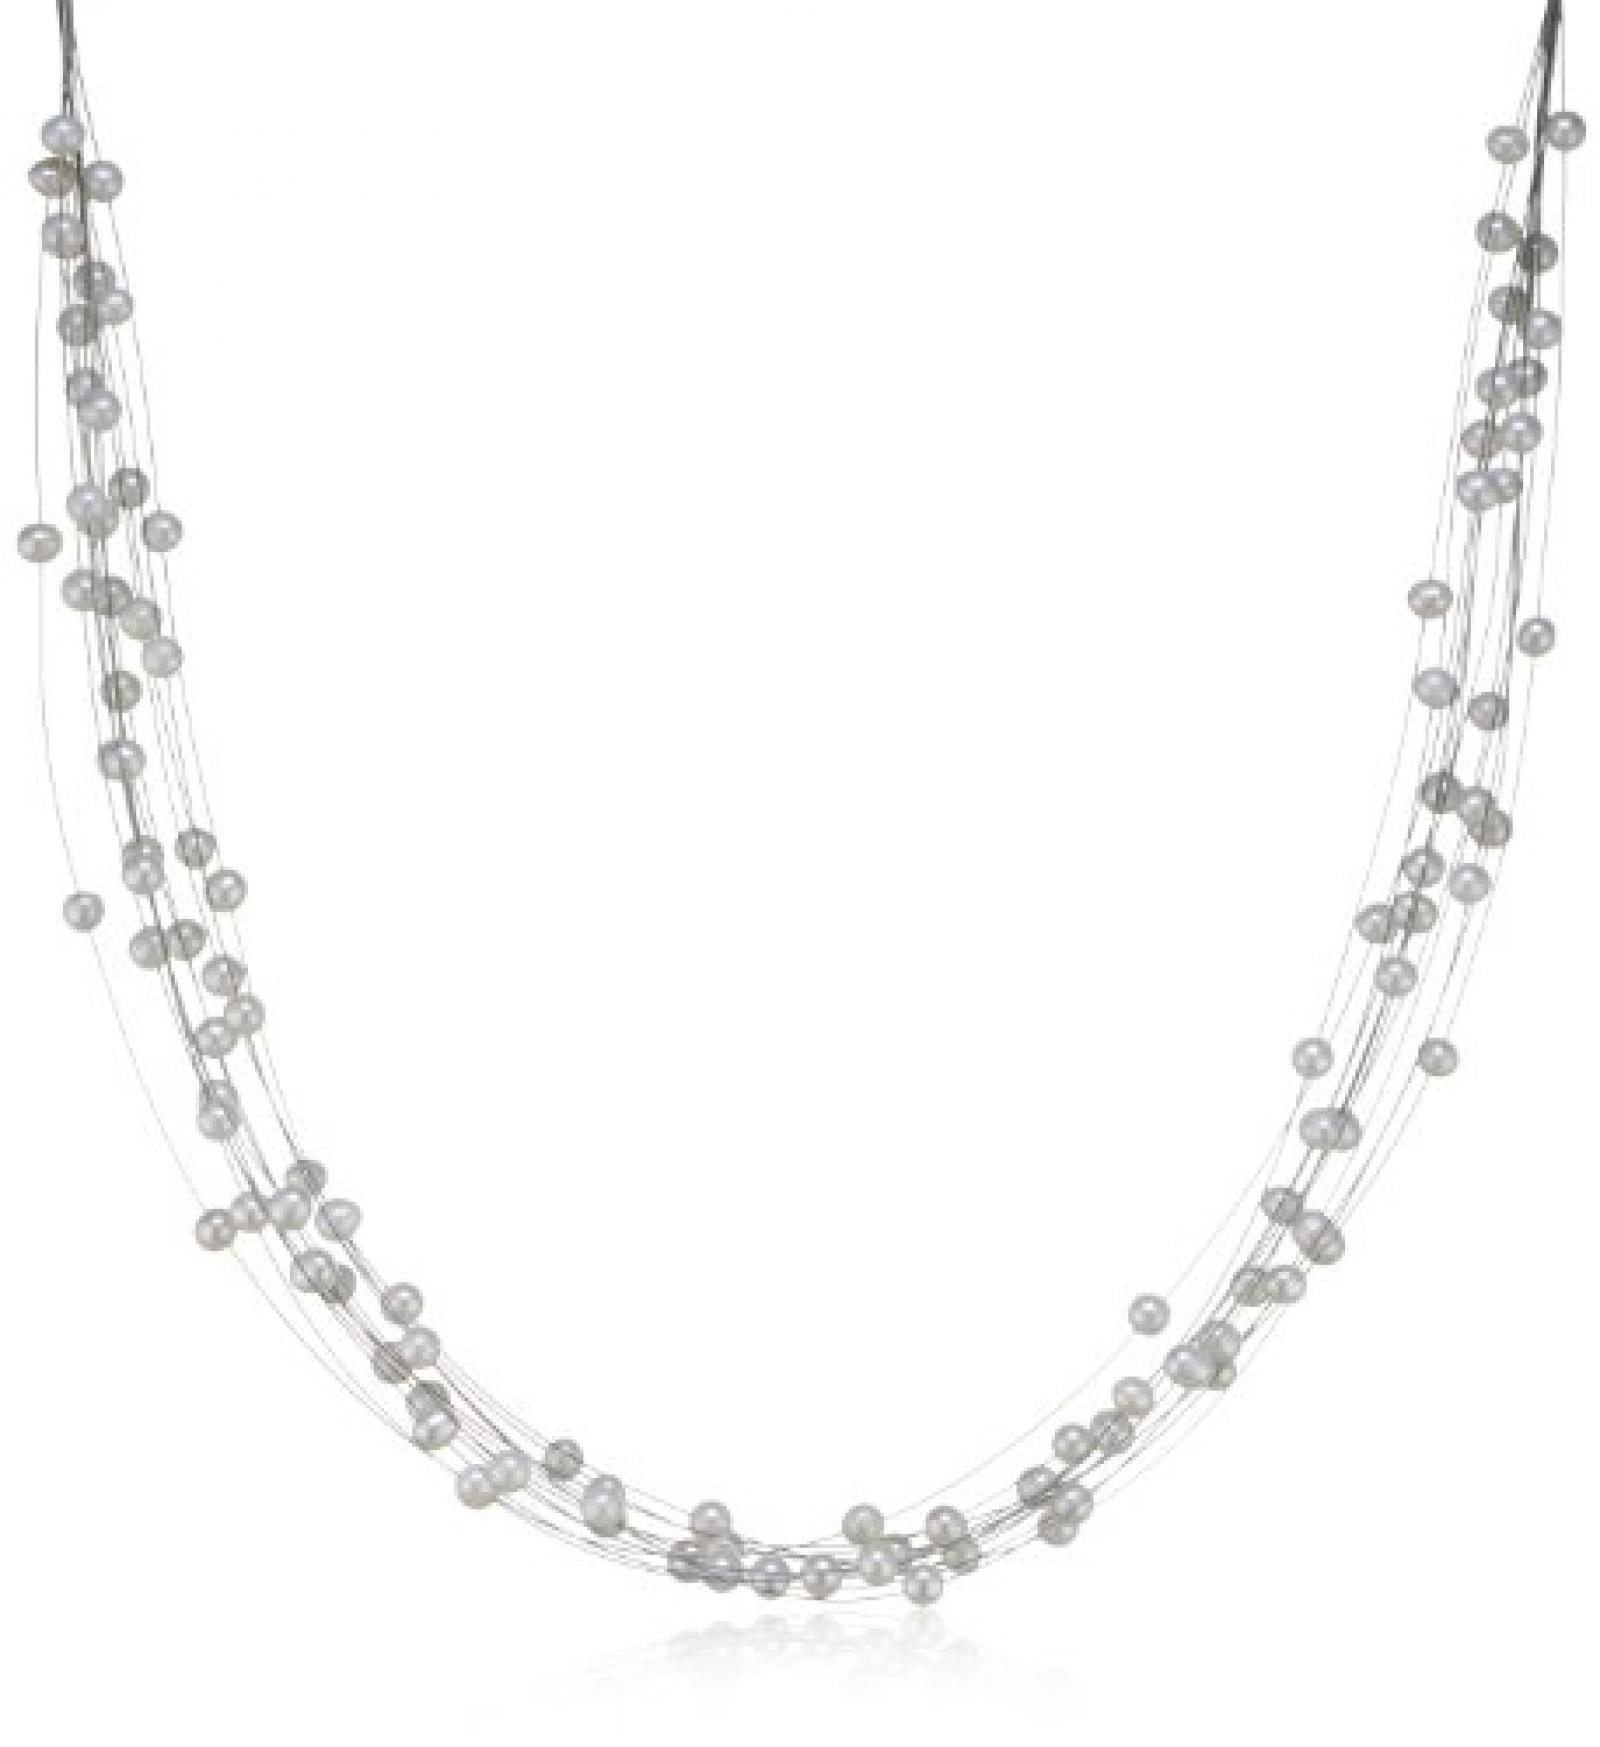 Valero Pearls Classic Collection Damen-Kette Hochwertige Süßwasser-Zuchtperlen in ca.  6 mm Oval weiß 925 Sterling Silber    43 cm + 5 cm Verlängerung   440510